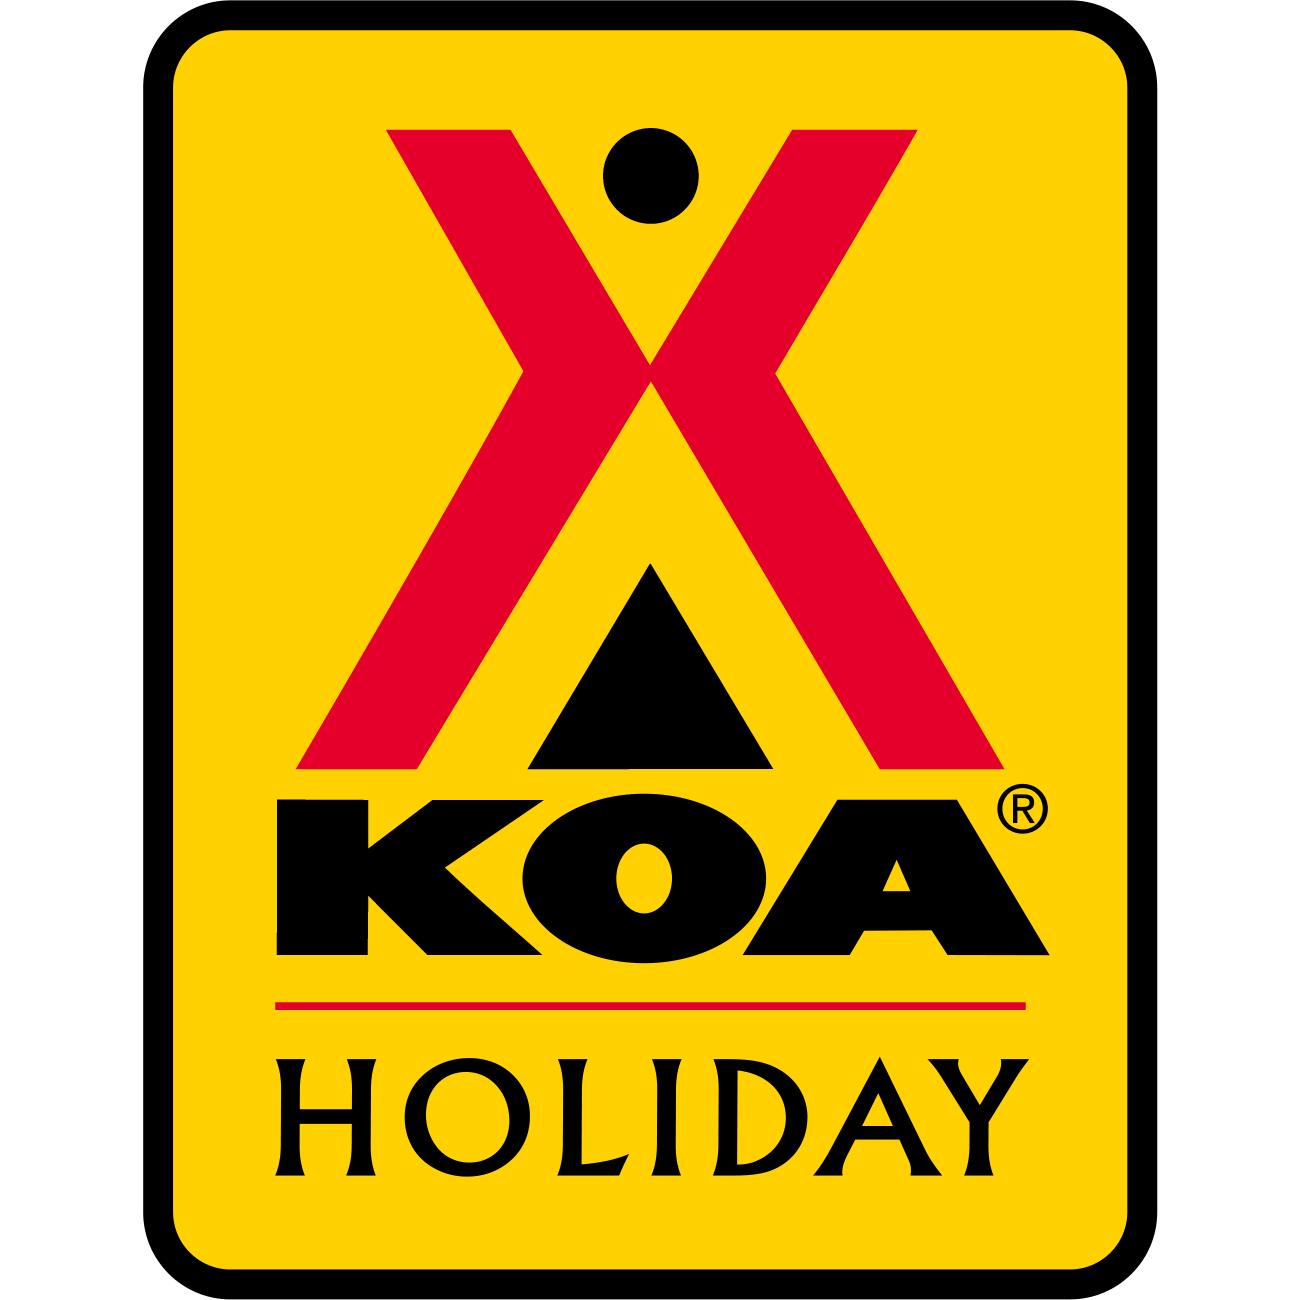 Orlando Southwest KOA Holiday